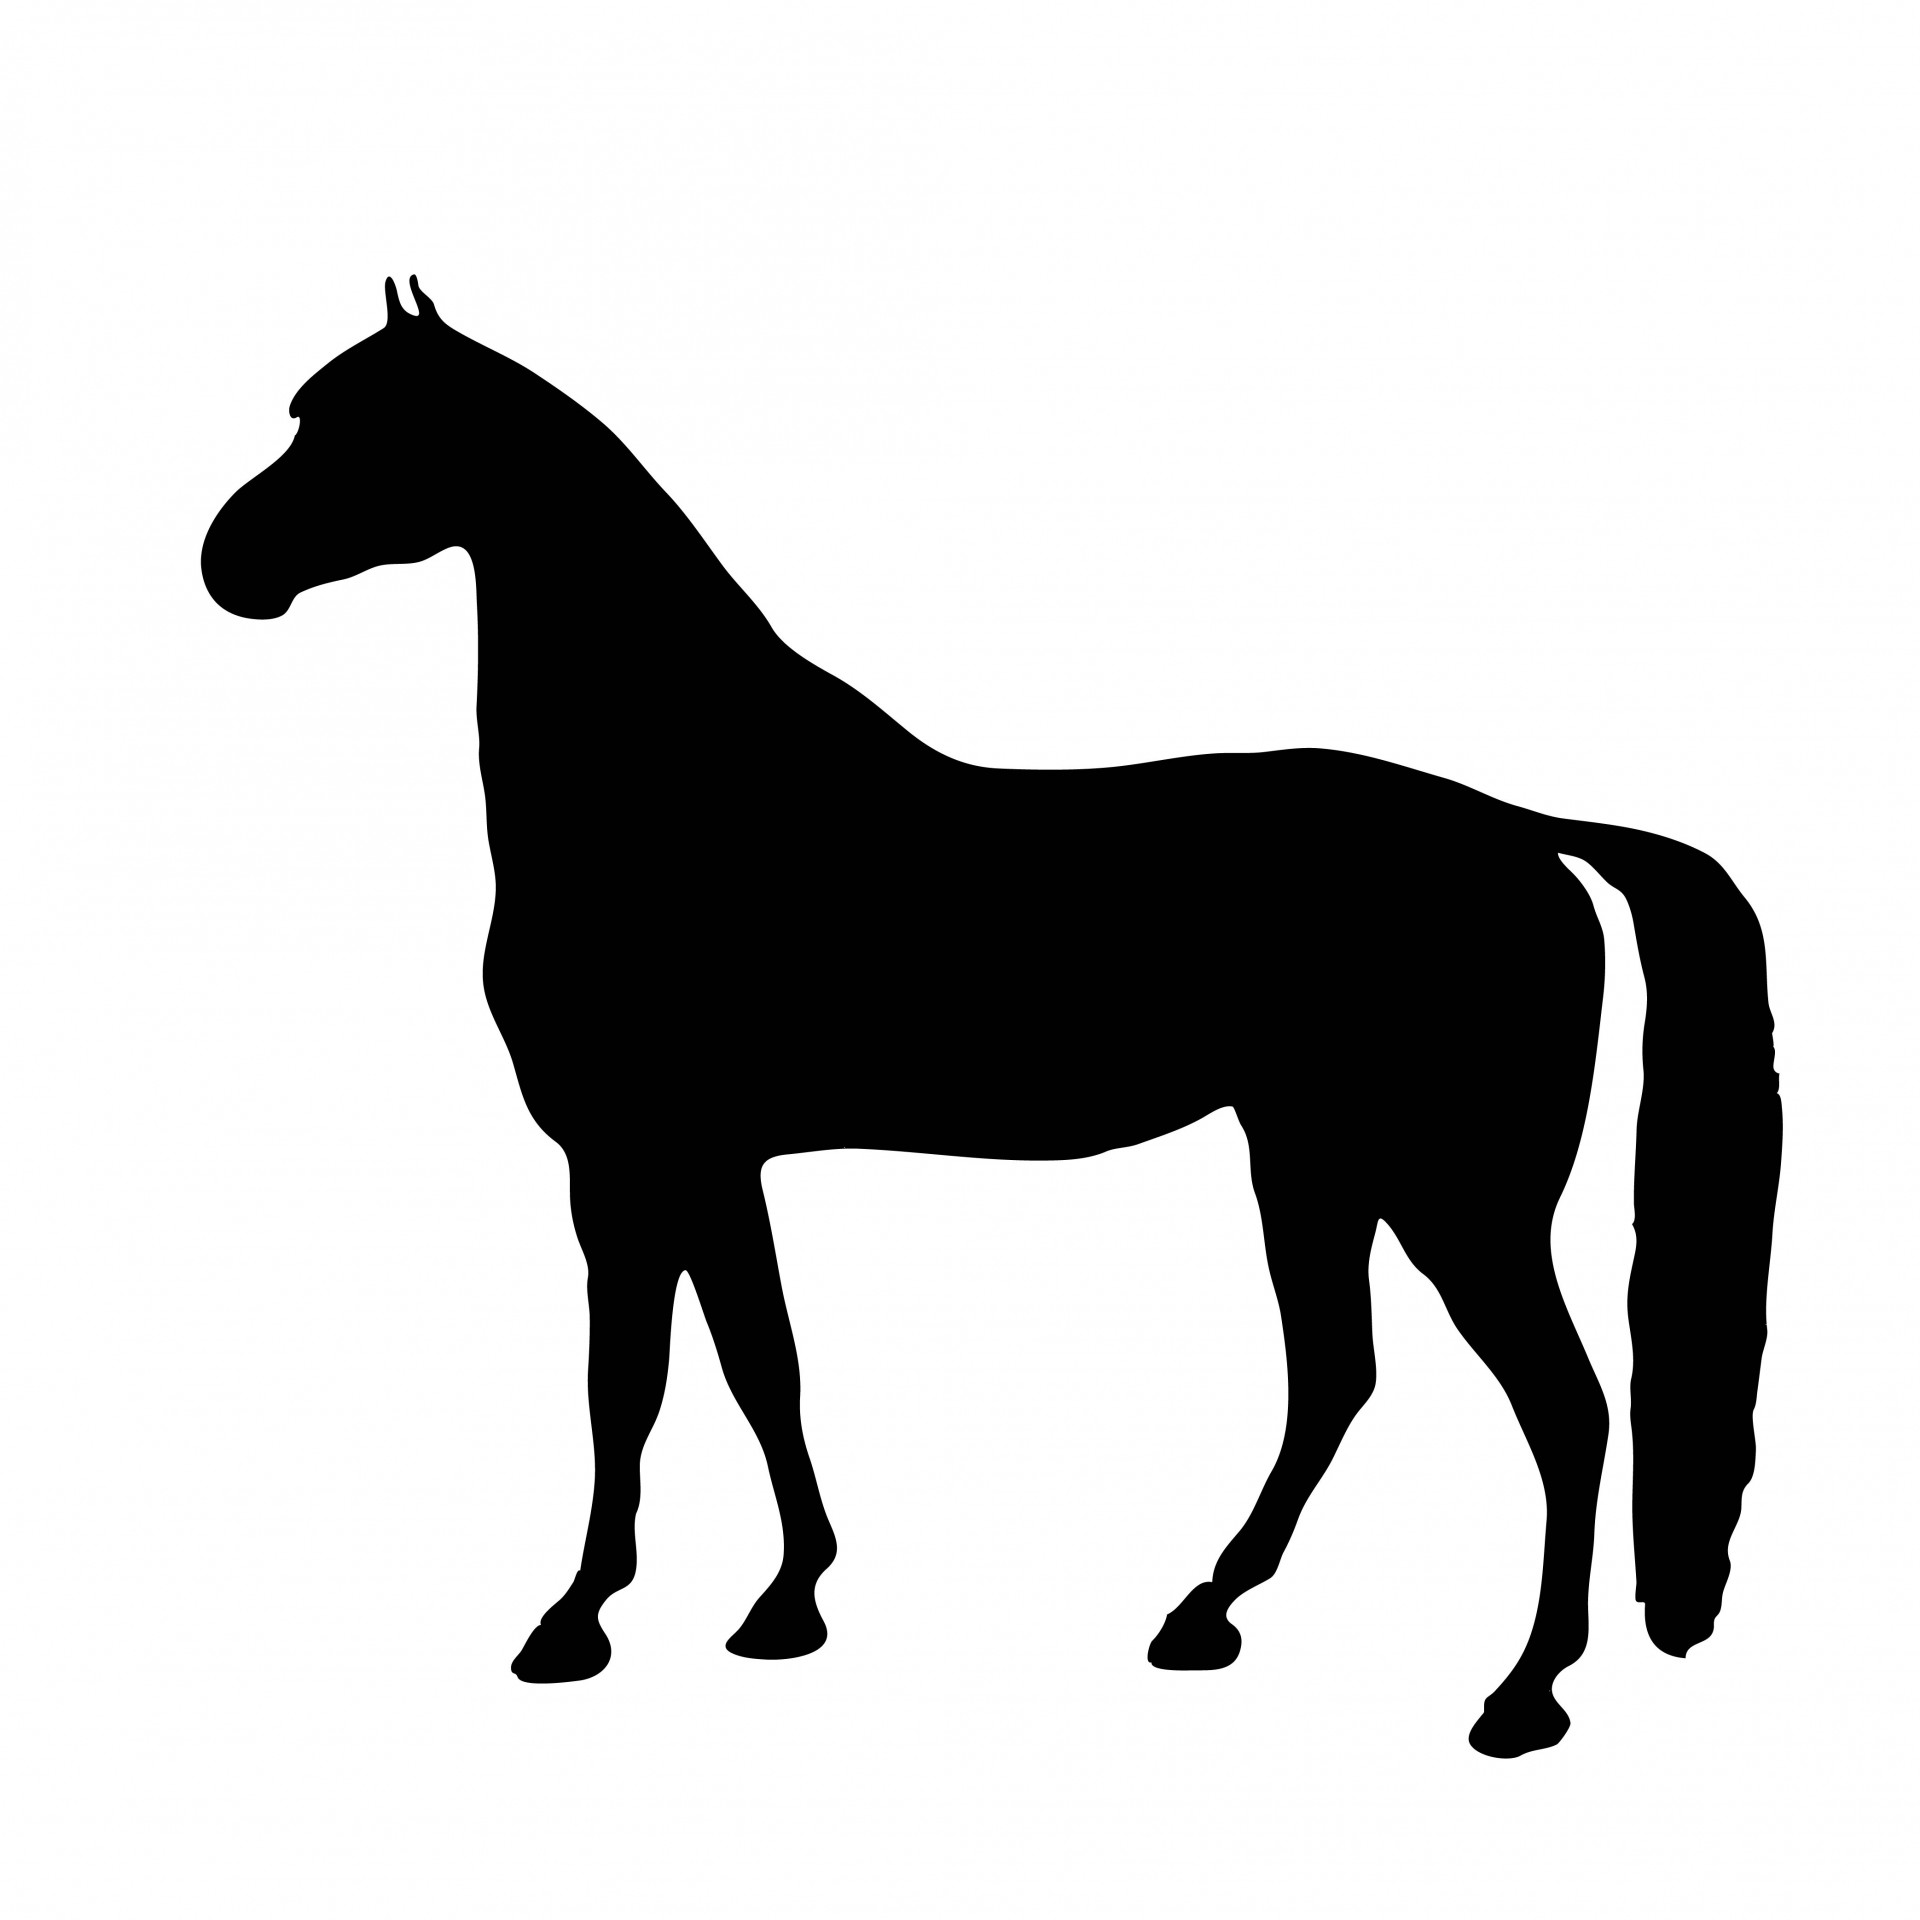 running horses silhouette at getdrawings com free for personal use rh getdrawings com Horse Outline Clip Art Western Horse Clip Art